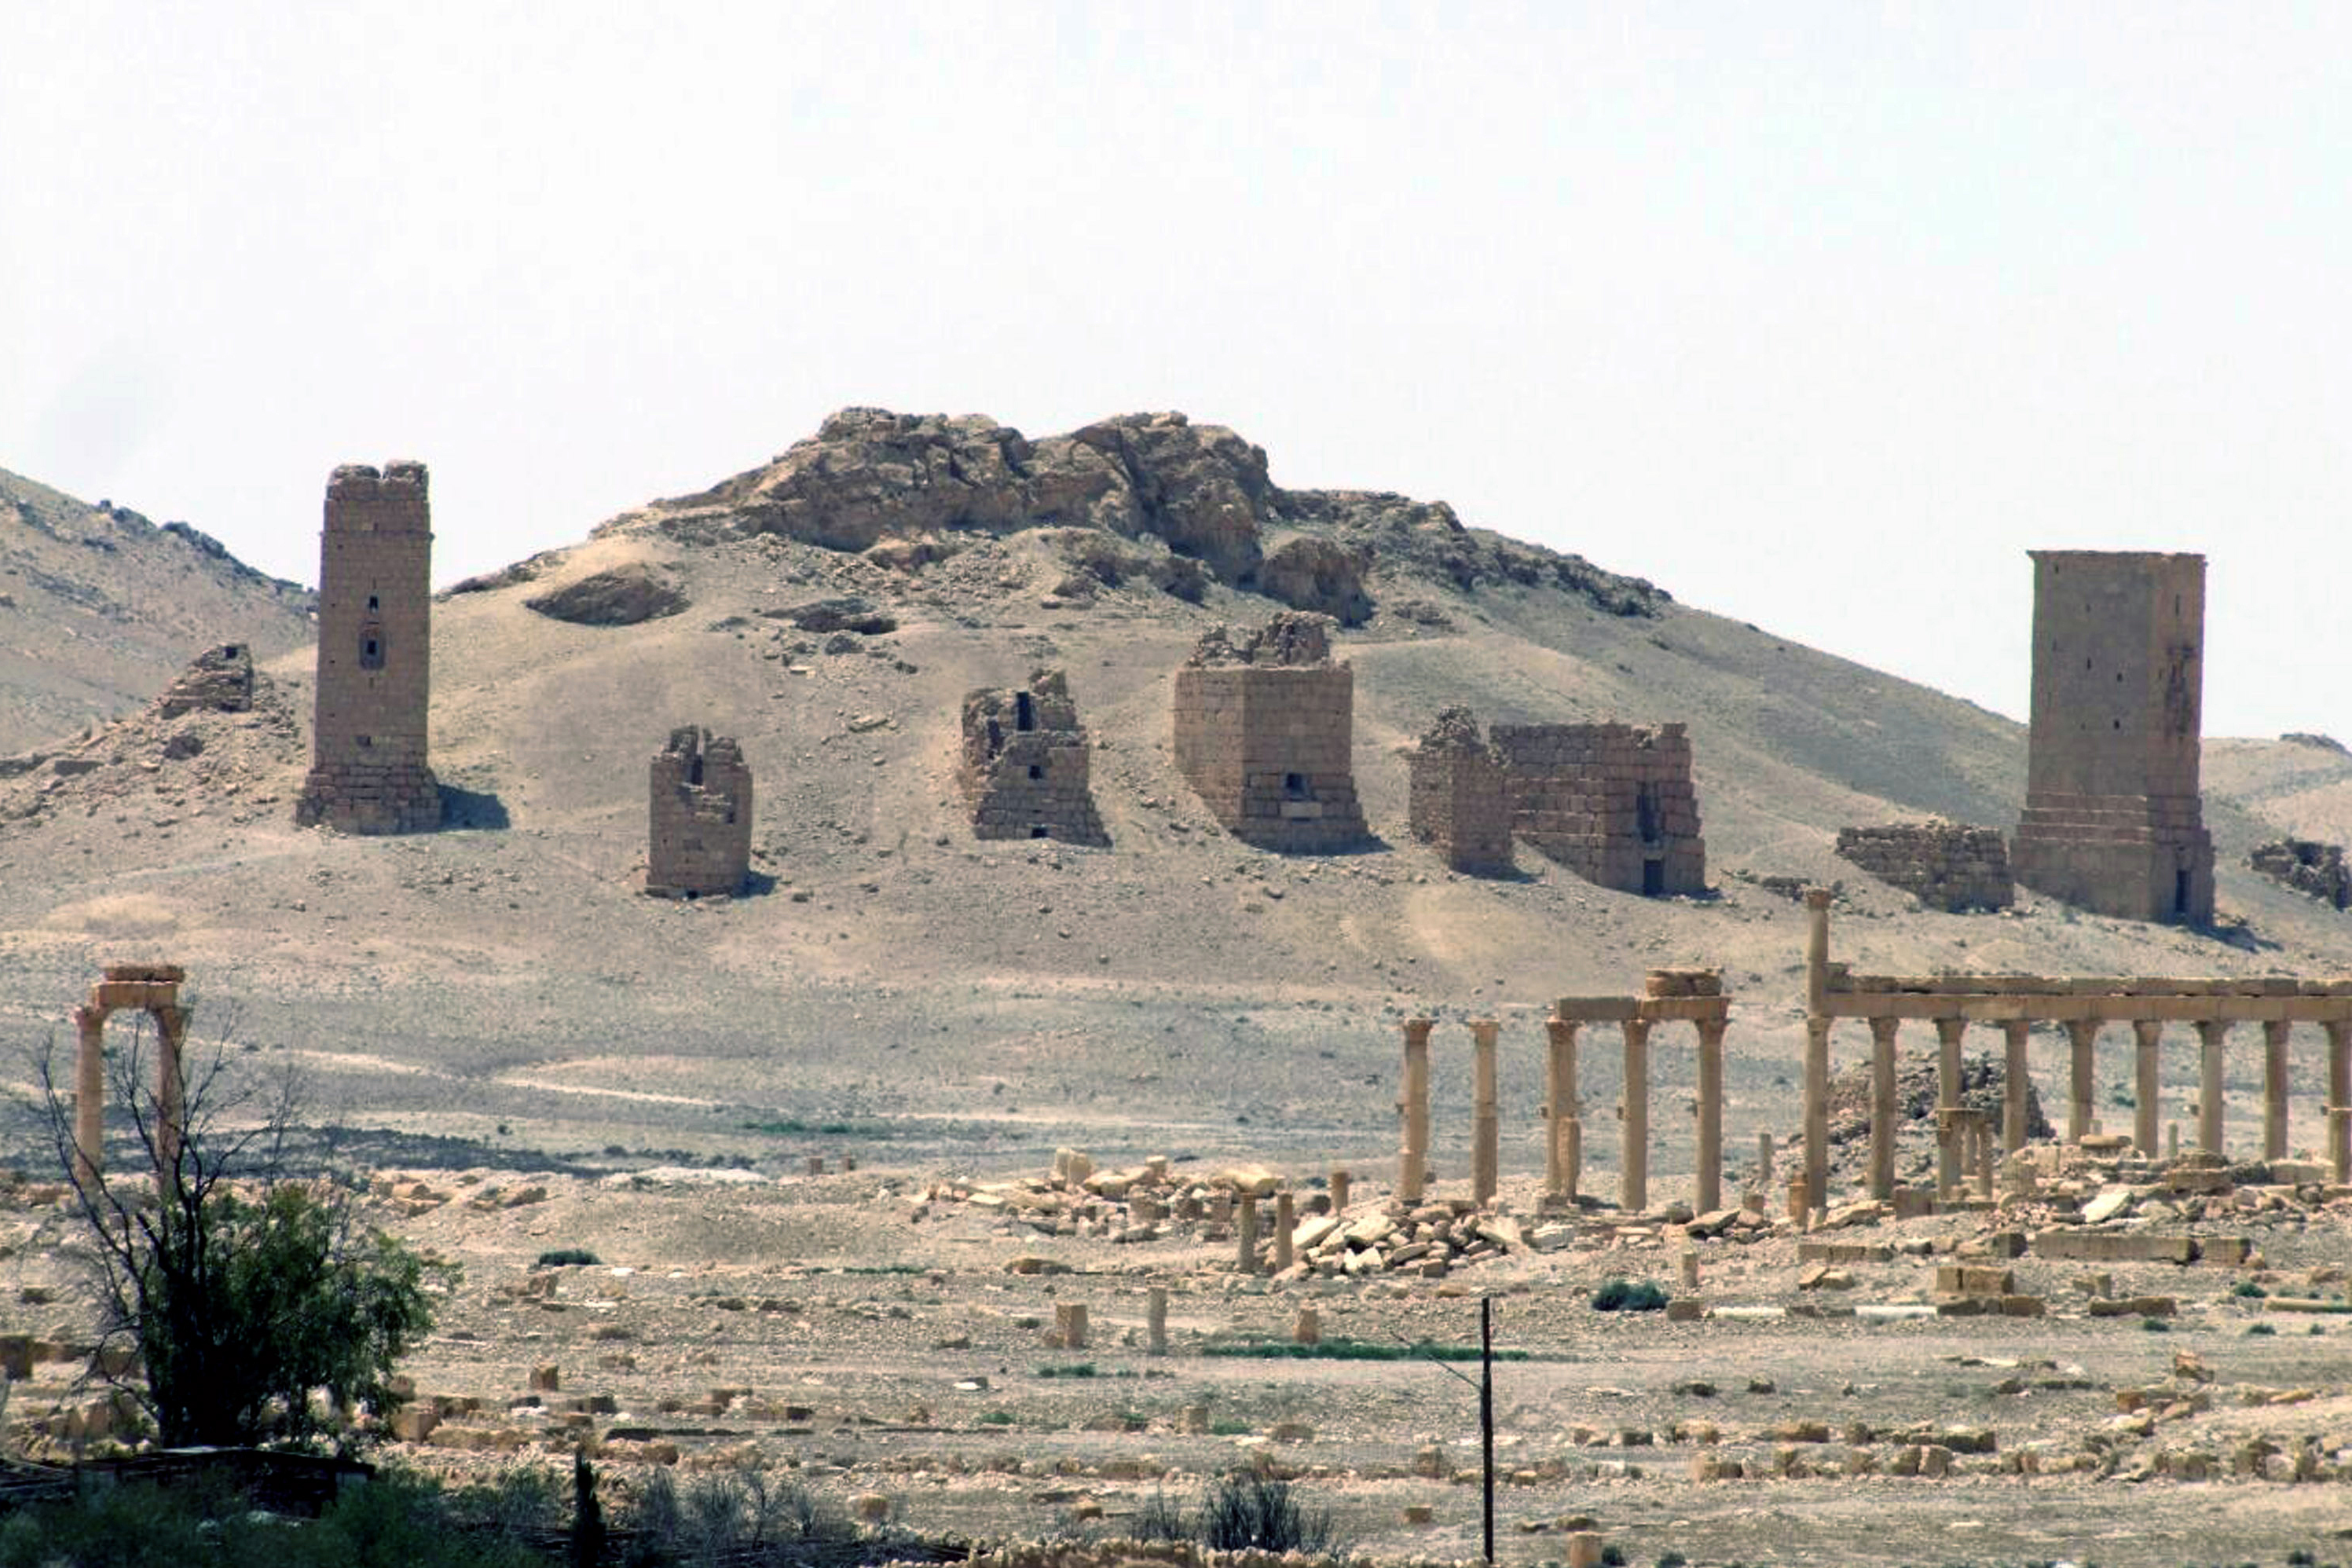 Syrian Antiquities Chief Calls For Help From International Community